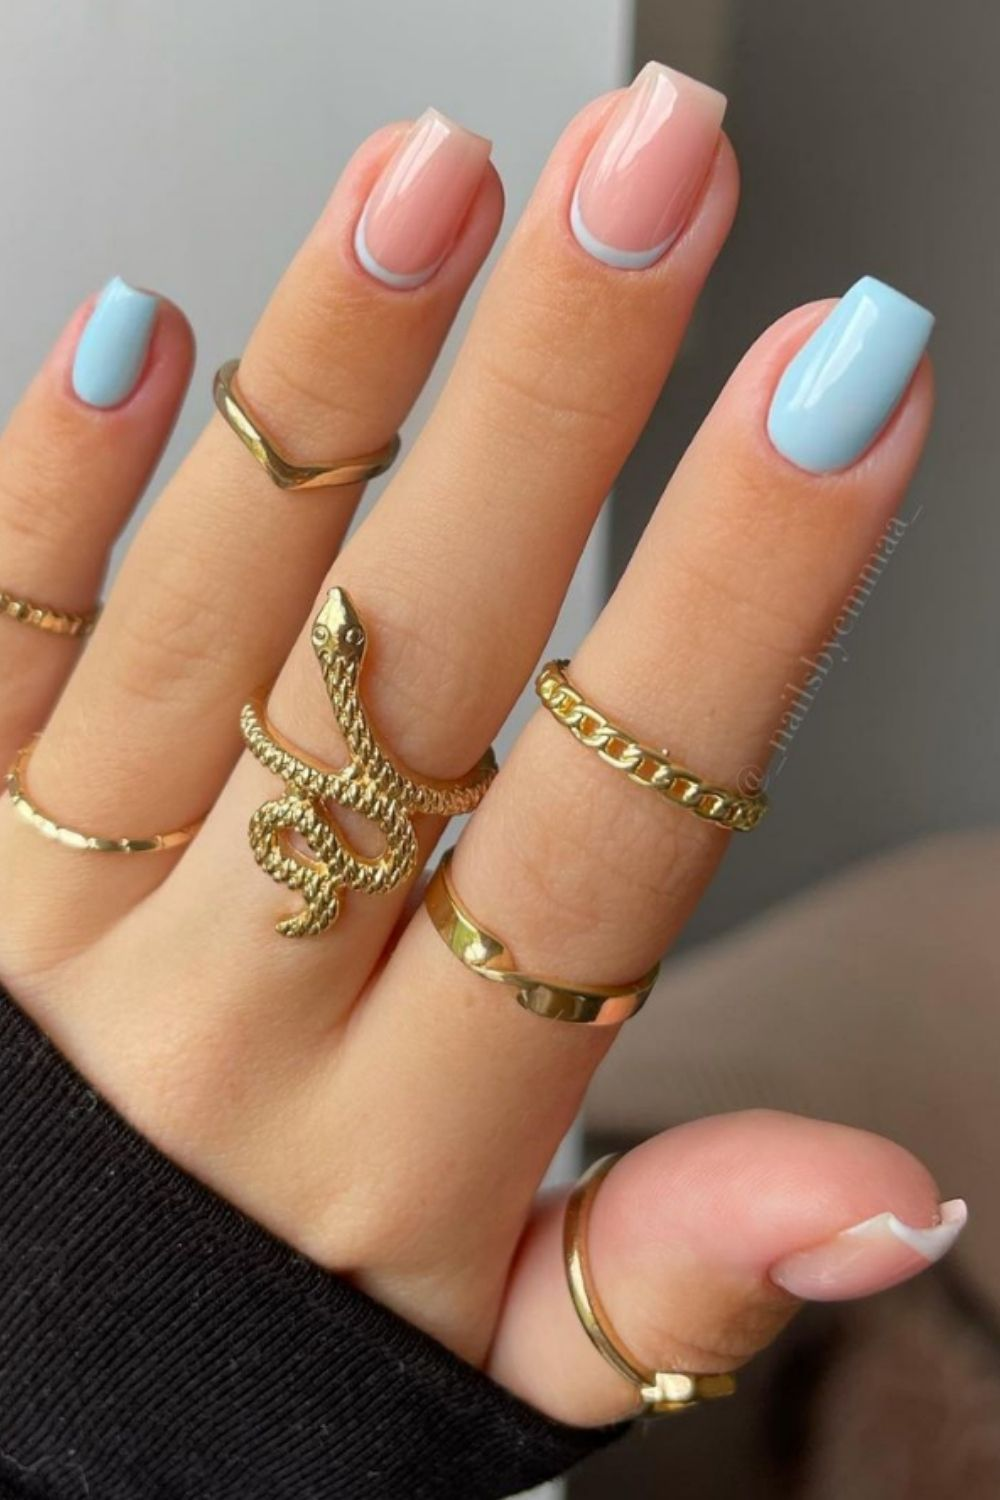 PASTEL TIP NAILS | 37 AMAZING NAIL DESIGNS FOR YOUR SUMMER 2021